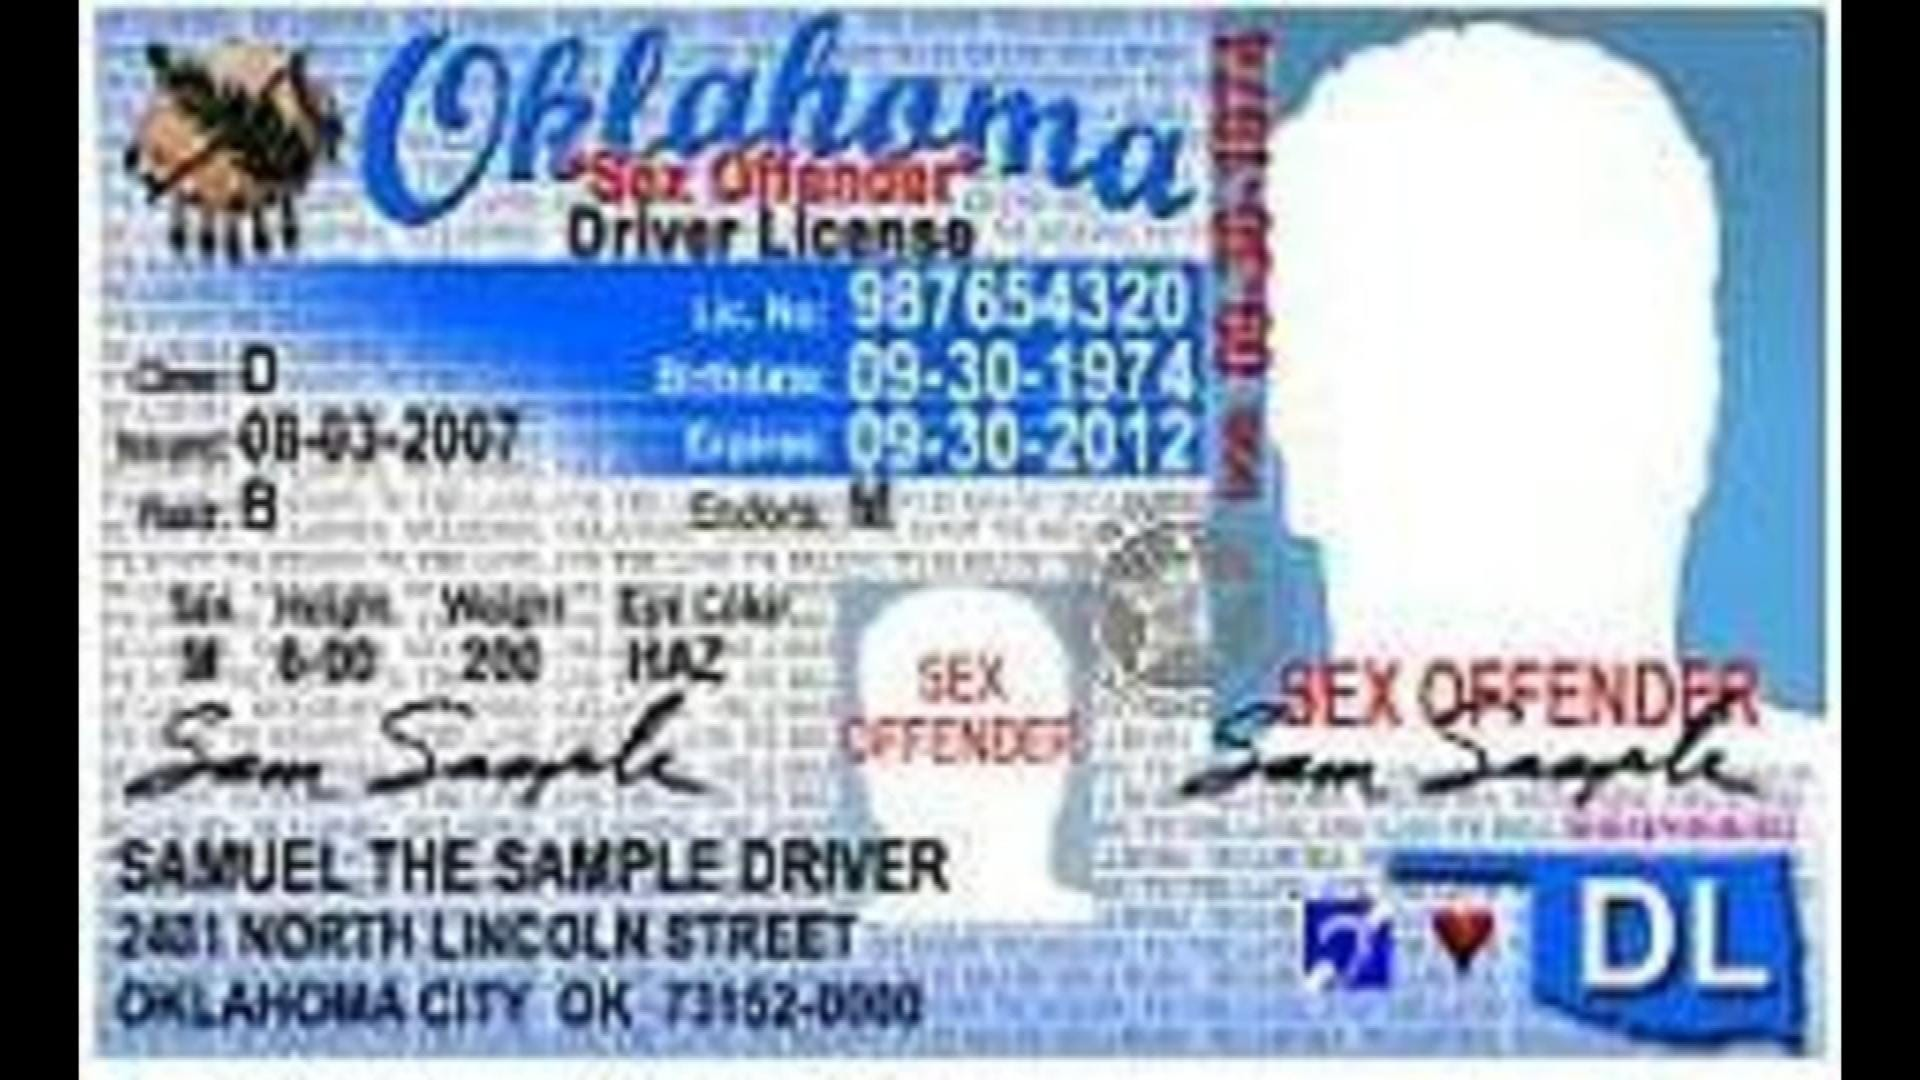 Federal Court Upholds Oklahoma 'Sex Offender' Label On Driver's License Law